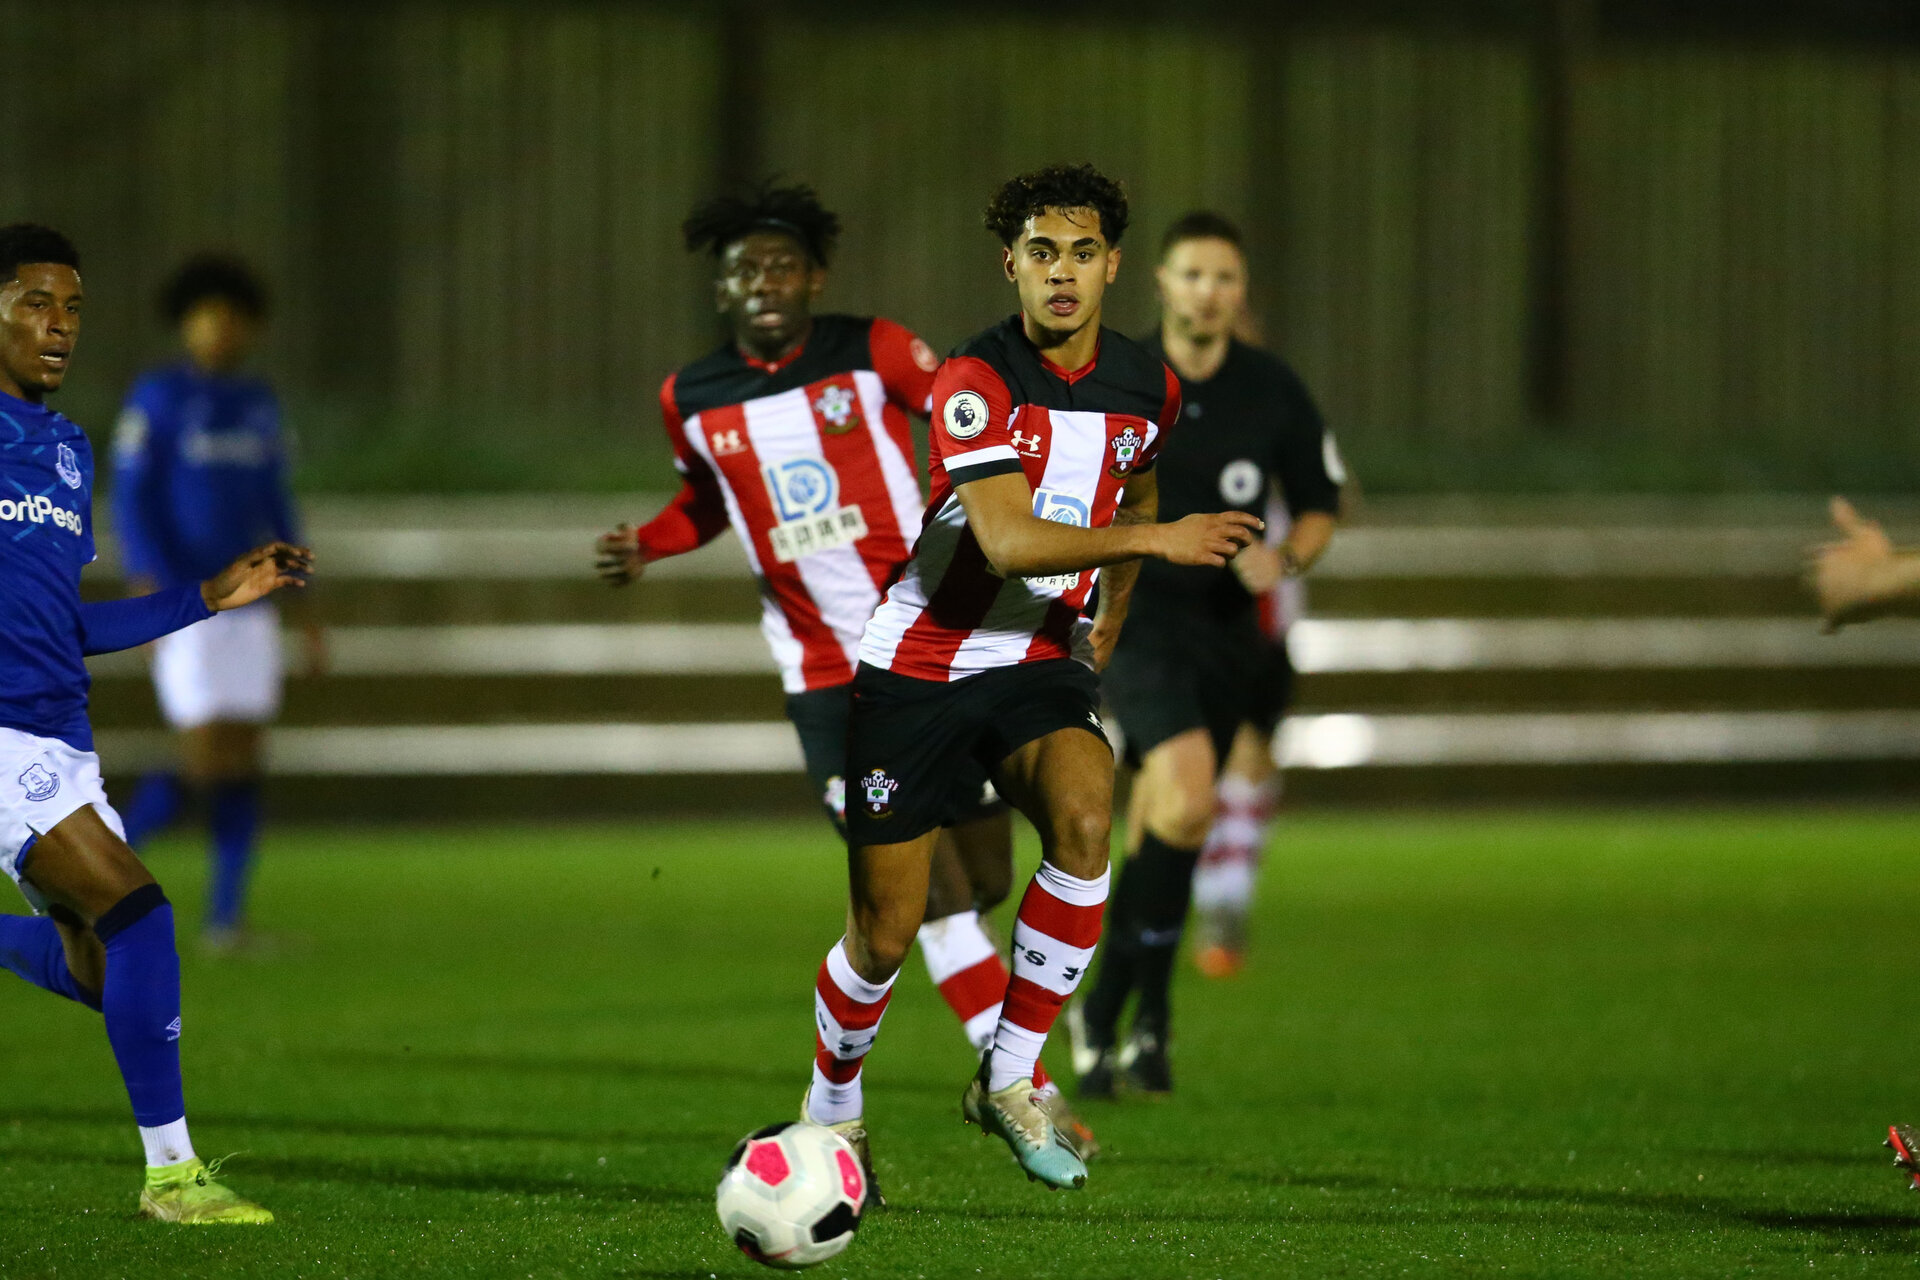 SOUTHAMPTON, ENGLAND - JANUARY 06: Christian Norton during the Premier League 2 match between Southampton U23 and Everton at Staplewood Training Ground on January 6, 2020 in Southampton, United Kingdom. (Photo by Isabelle Field/Southampton FC via Getty Images)